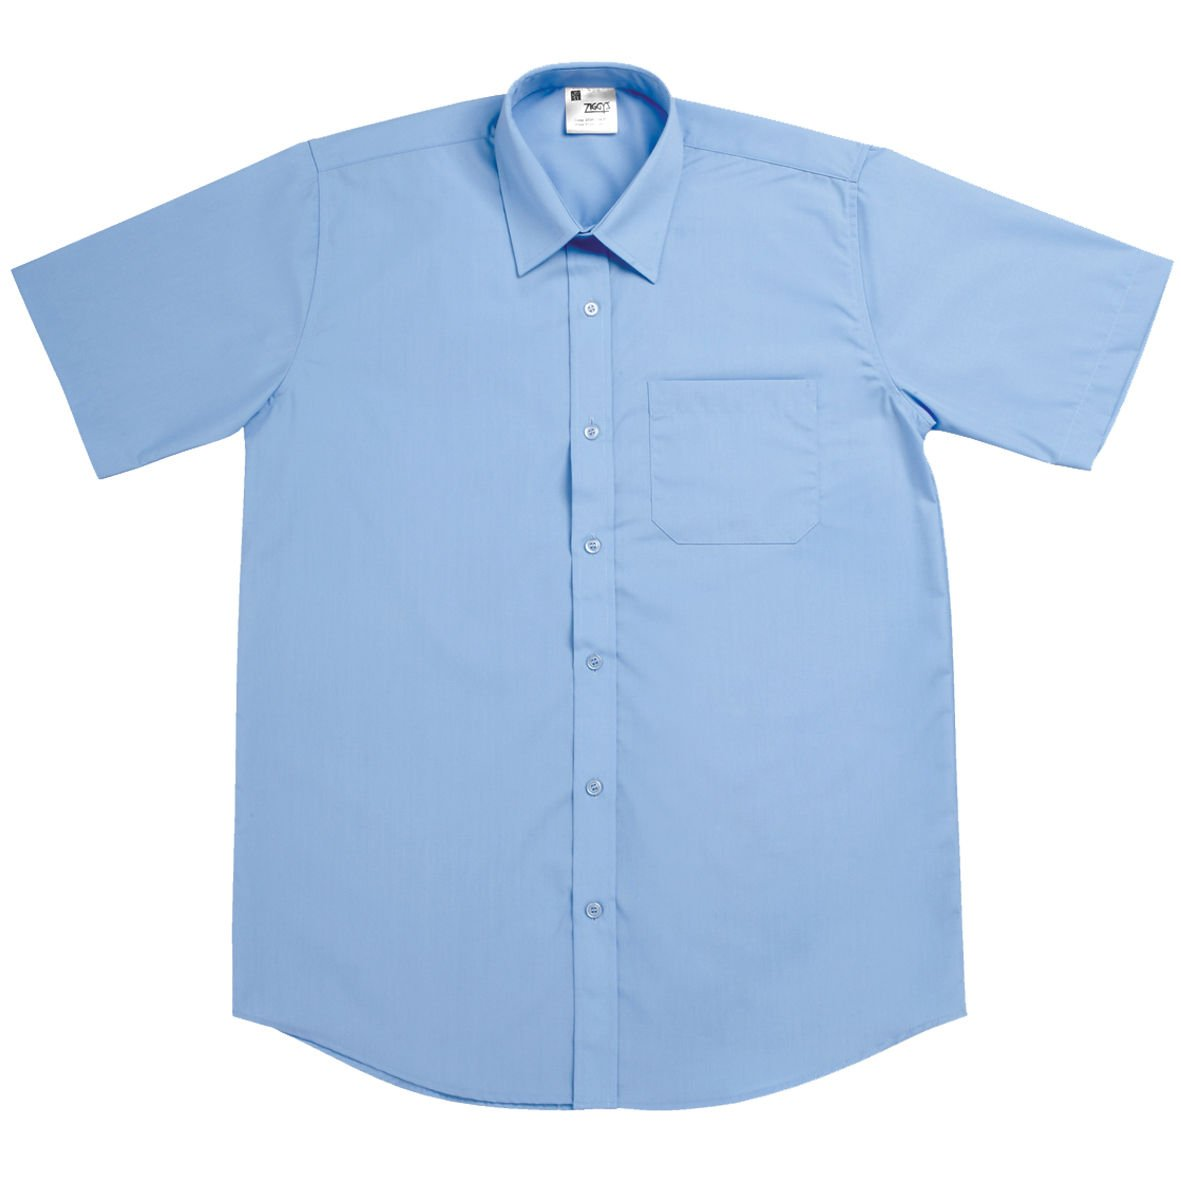 Boys blue short sleeved shirt (TWIN PACK)